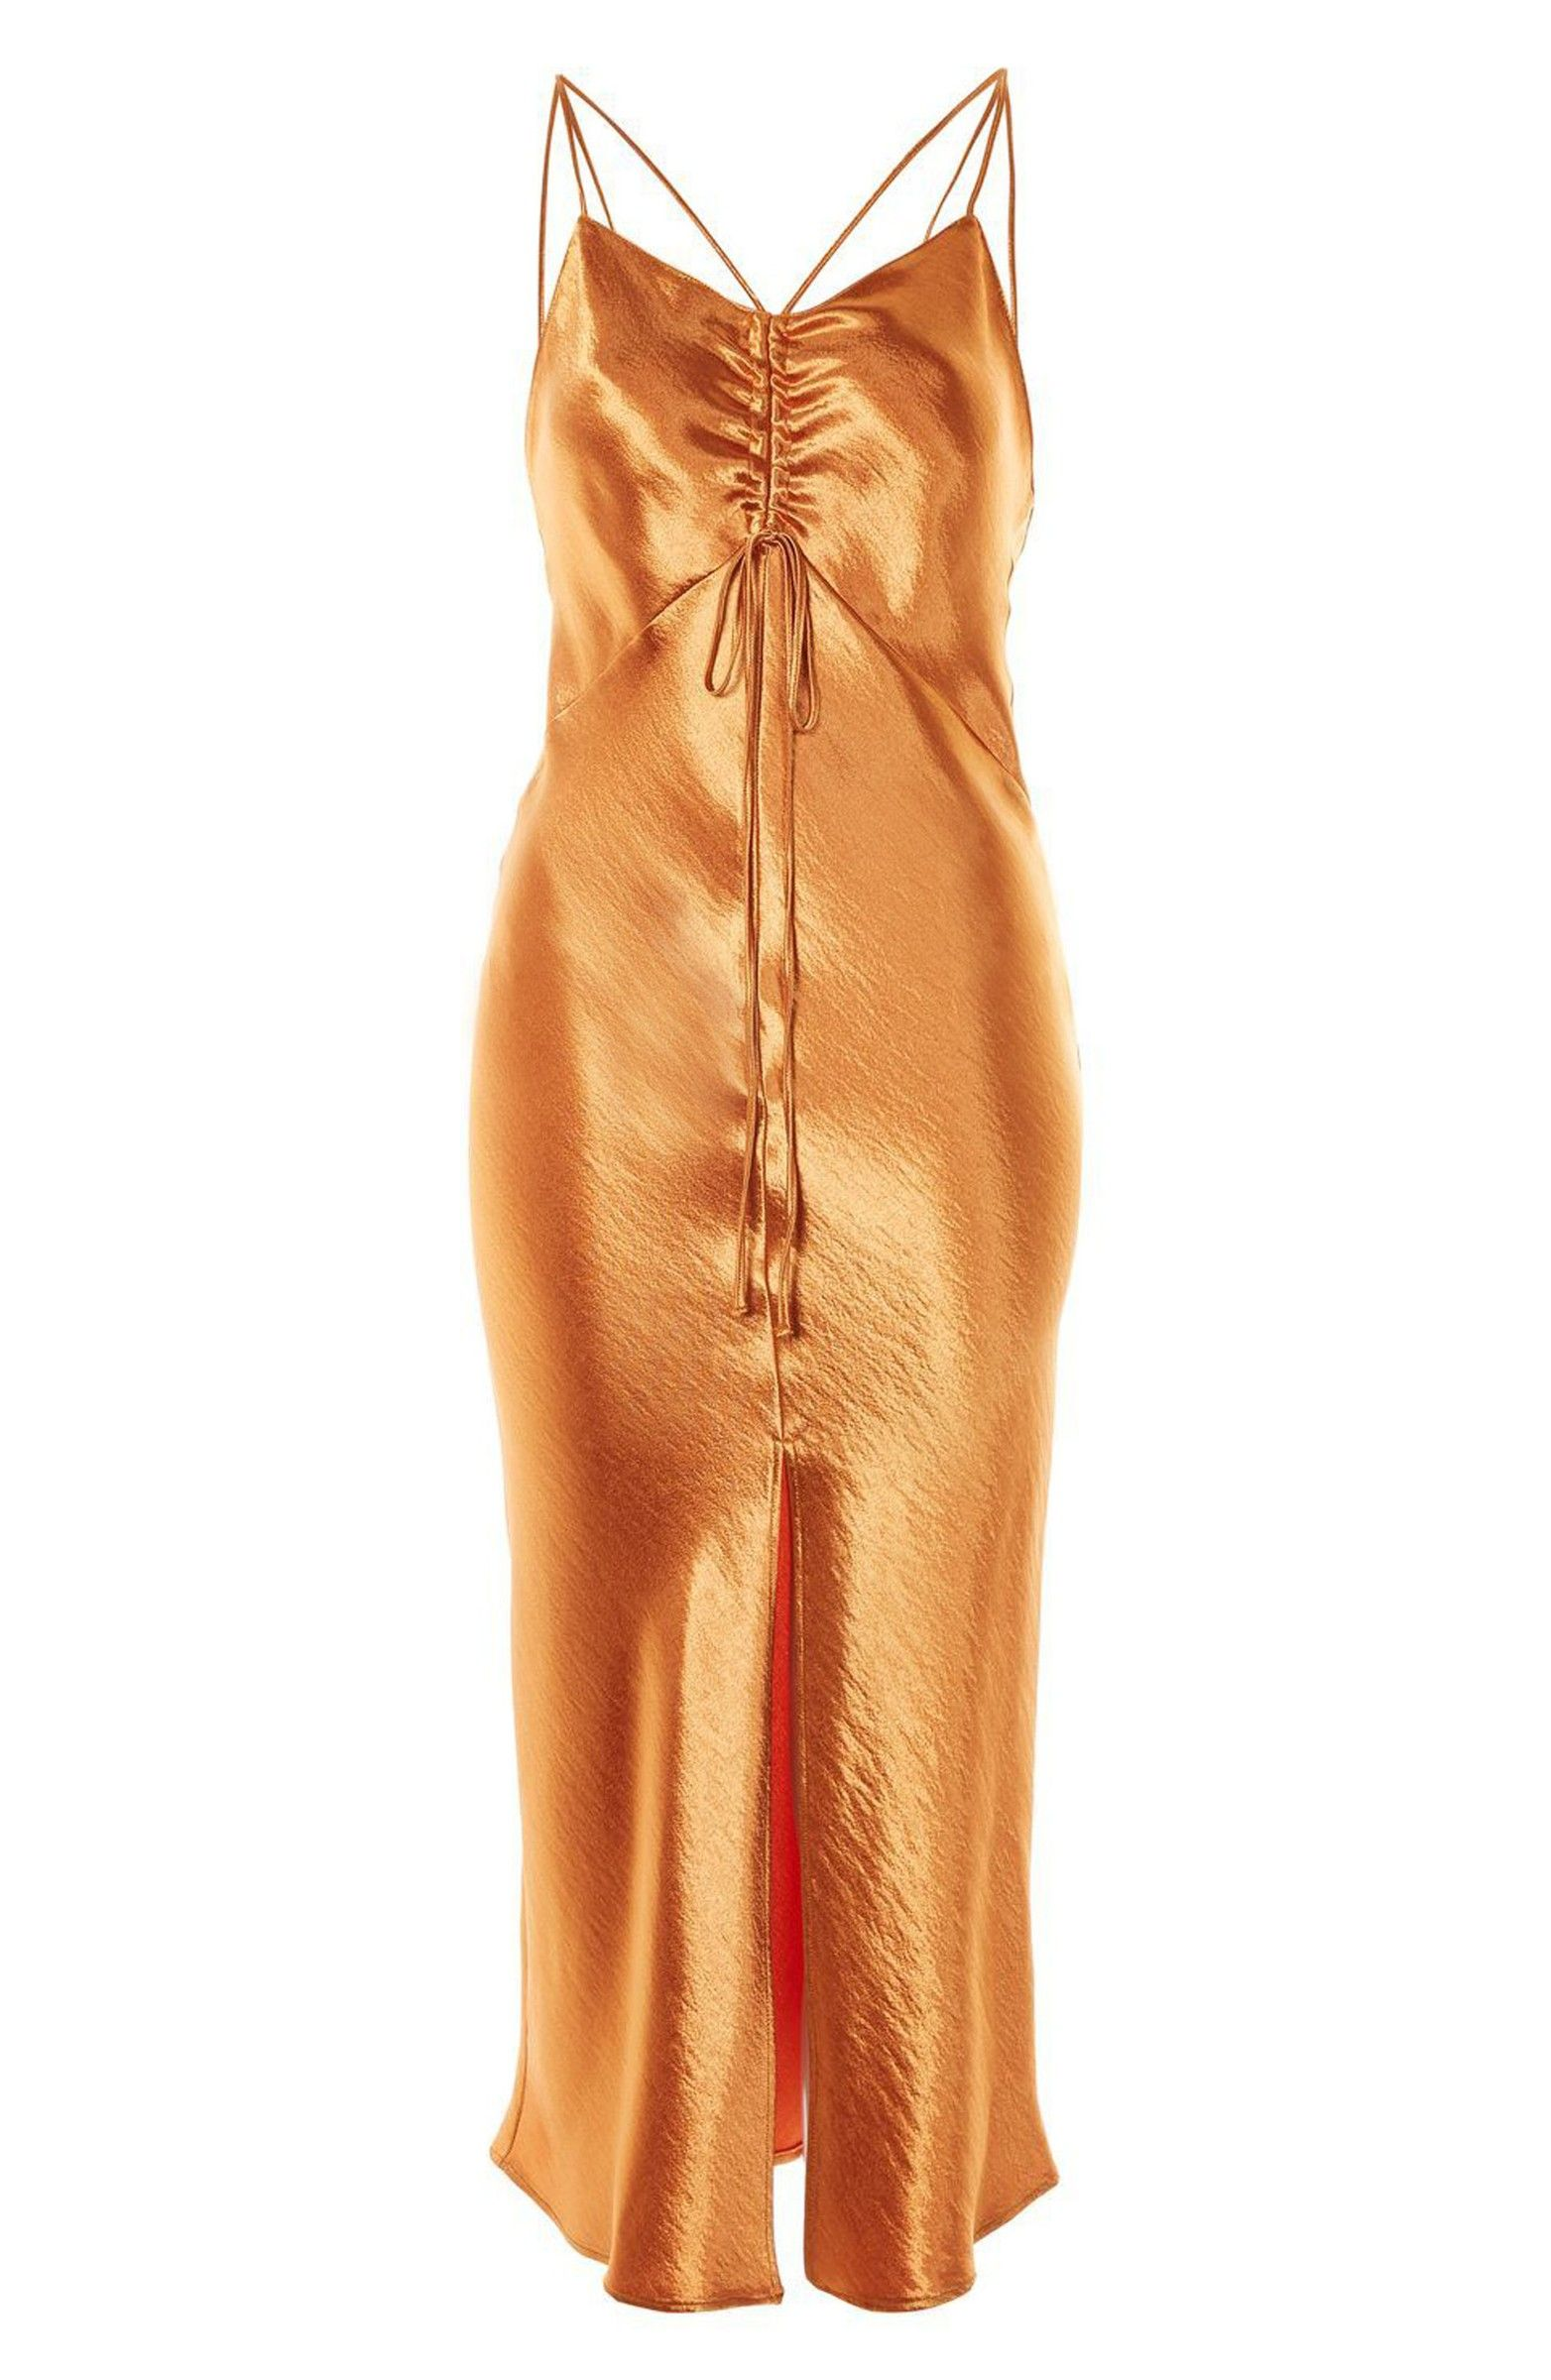 cdd0758ffd166 Main Image - Topshop Strappy Satin Slipdress $125 | What I Want ...